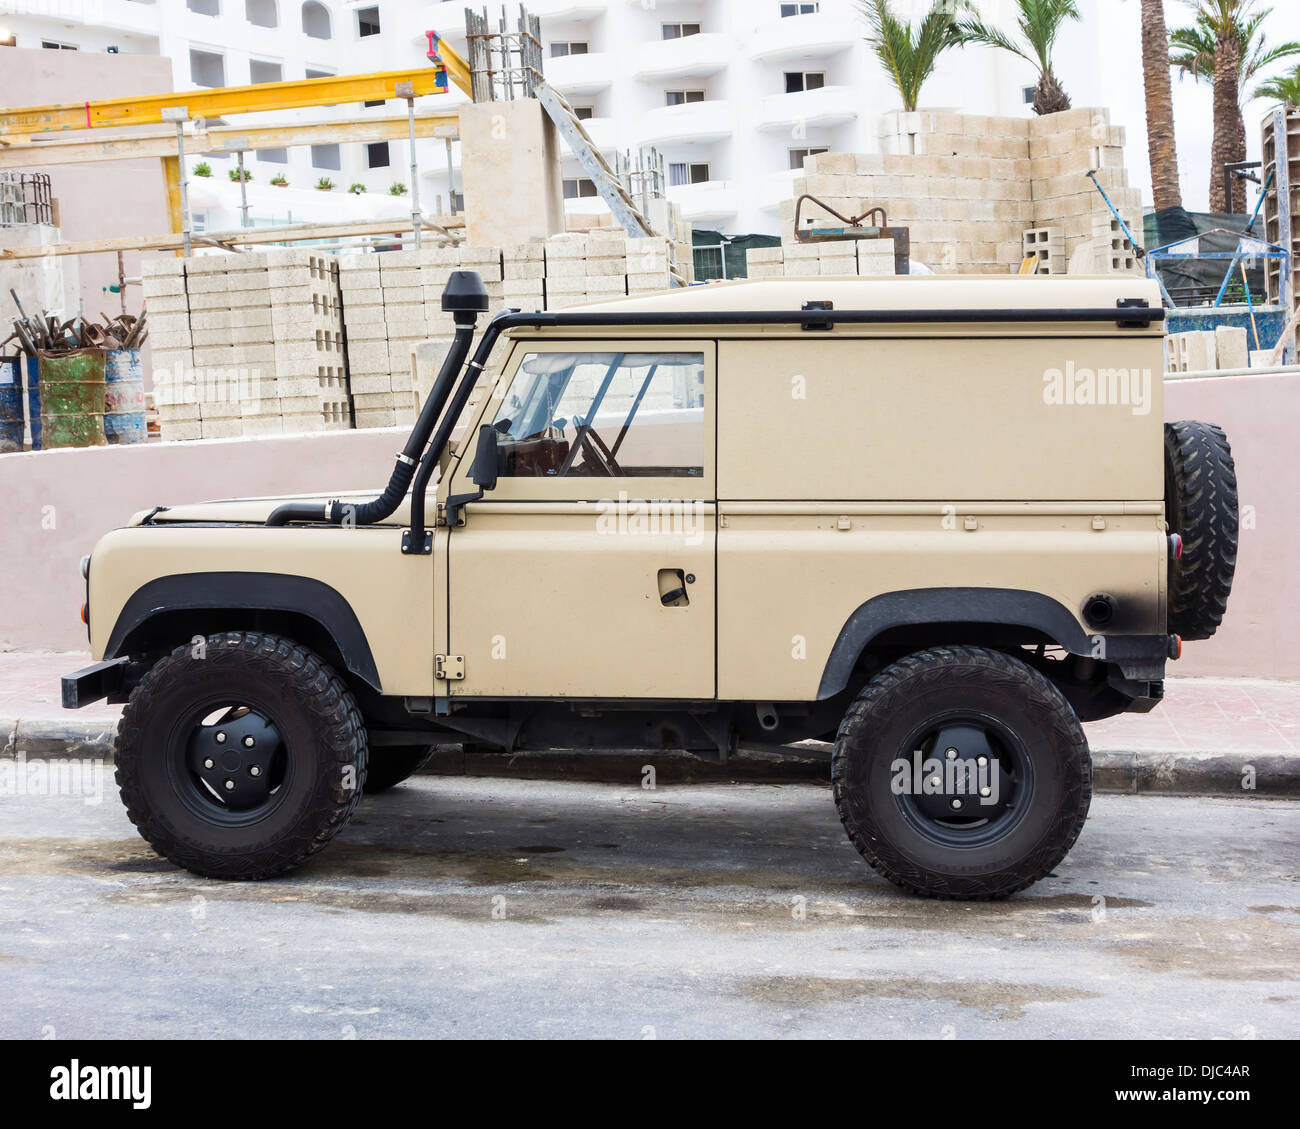 Commercial Land Rover Defender hardtop parked next to a construction site Europe . - Stock Image